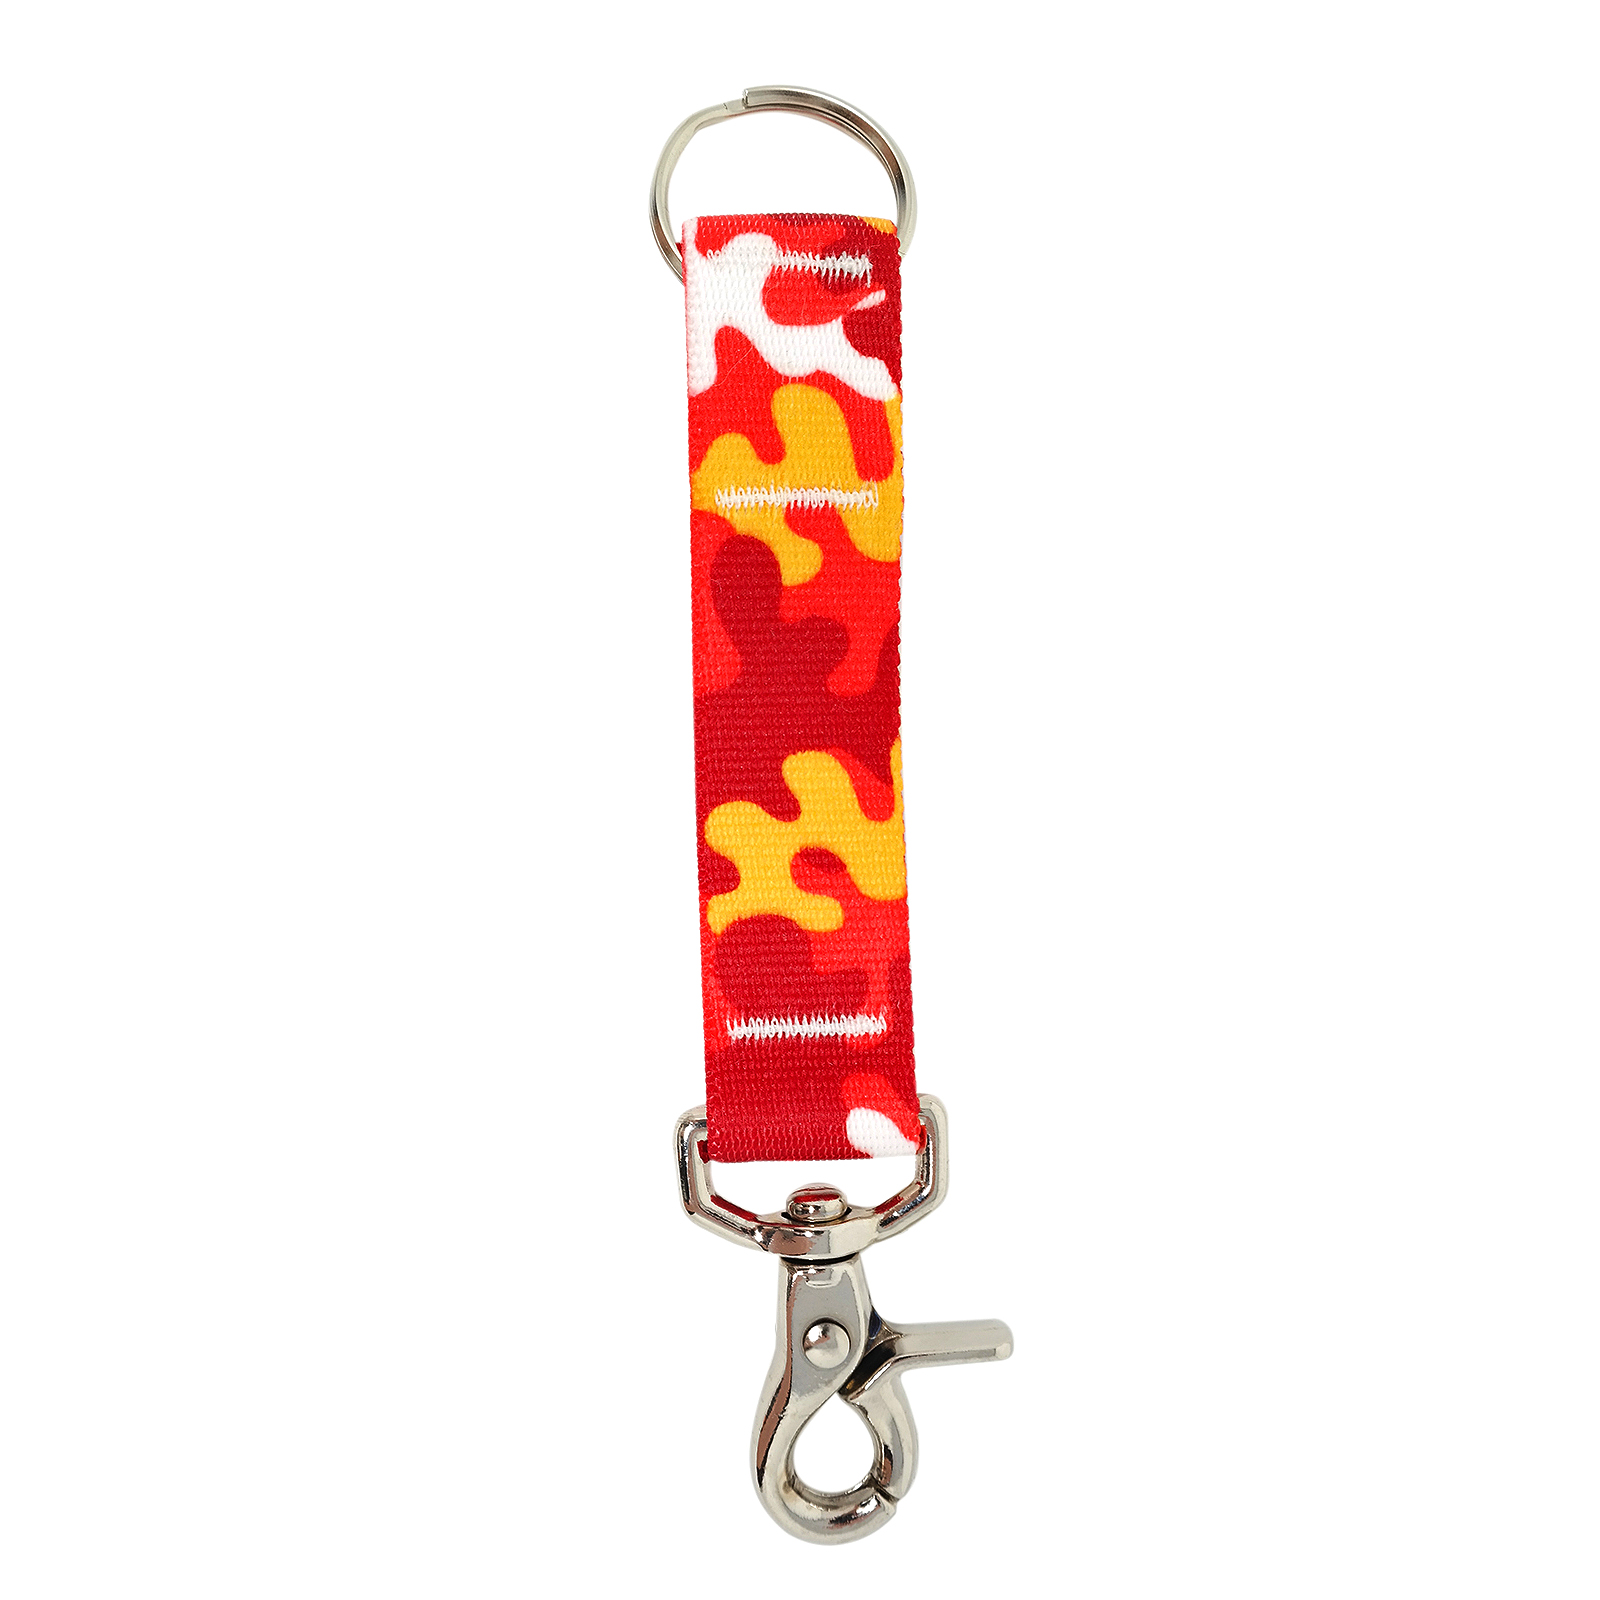 Red & Gold Camo keychain